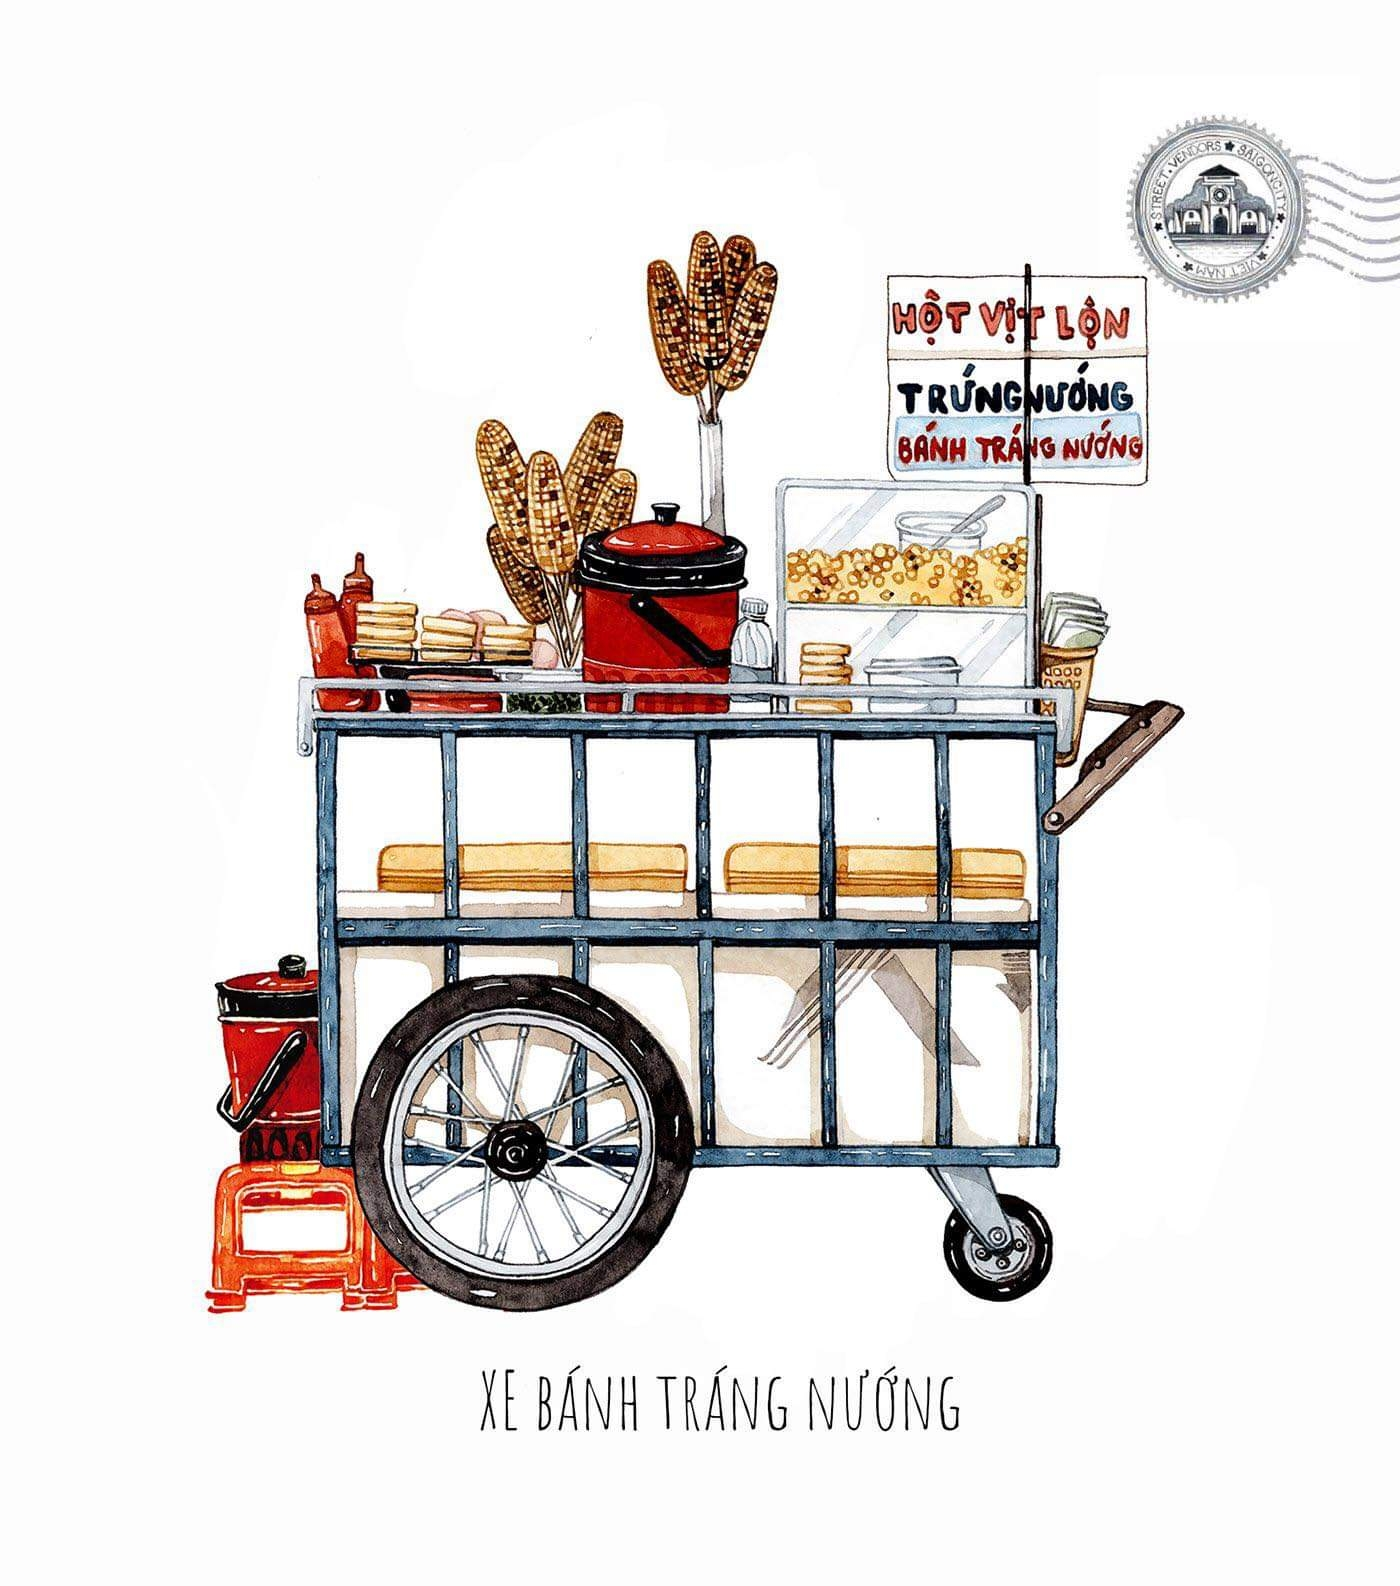 sketches of foodcarts reveal a glimpse into vietnamese culinary culture